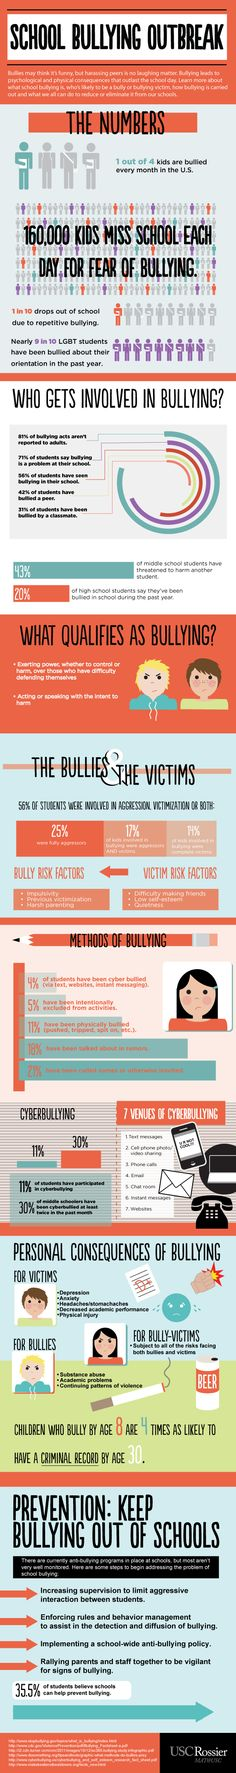 School bullying outbreak infograph.